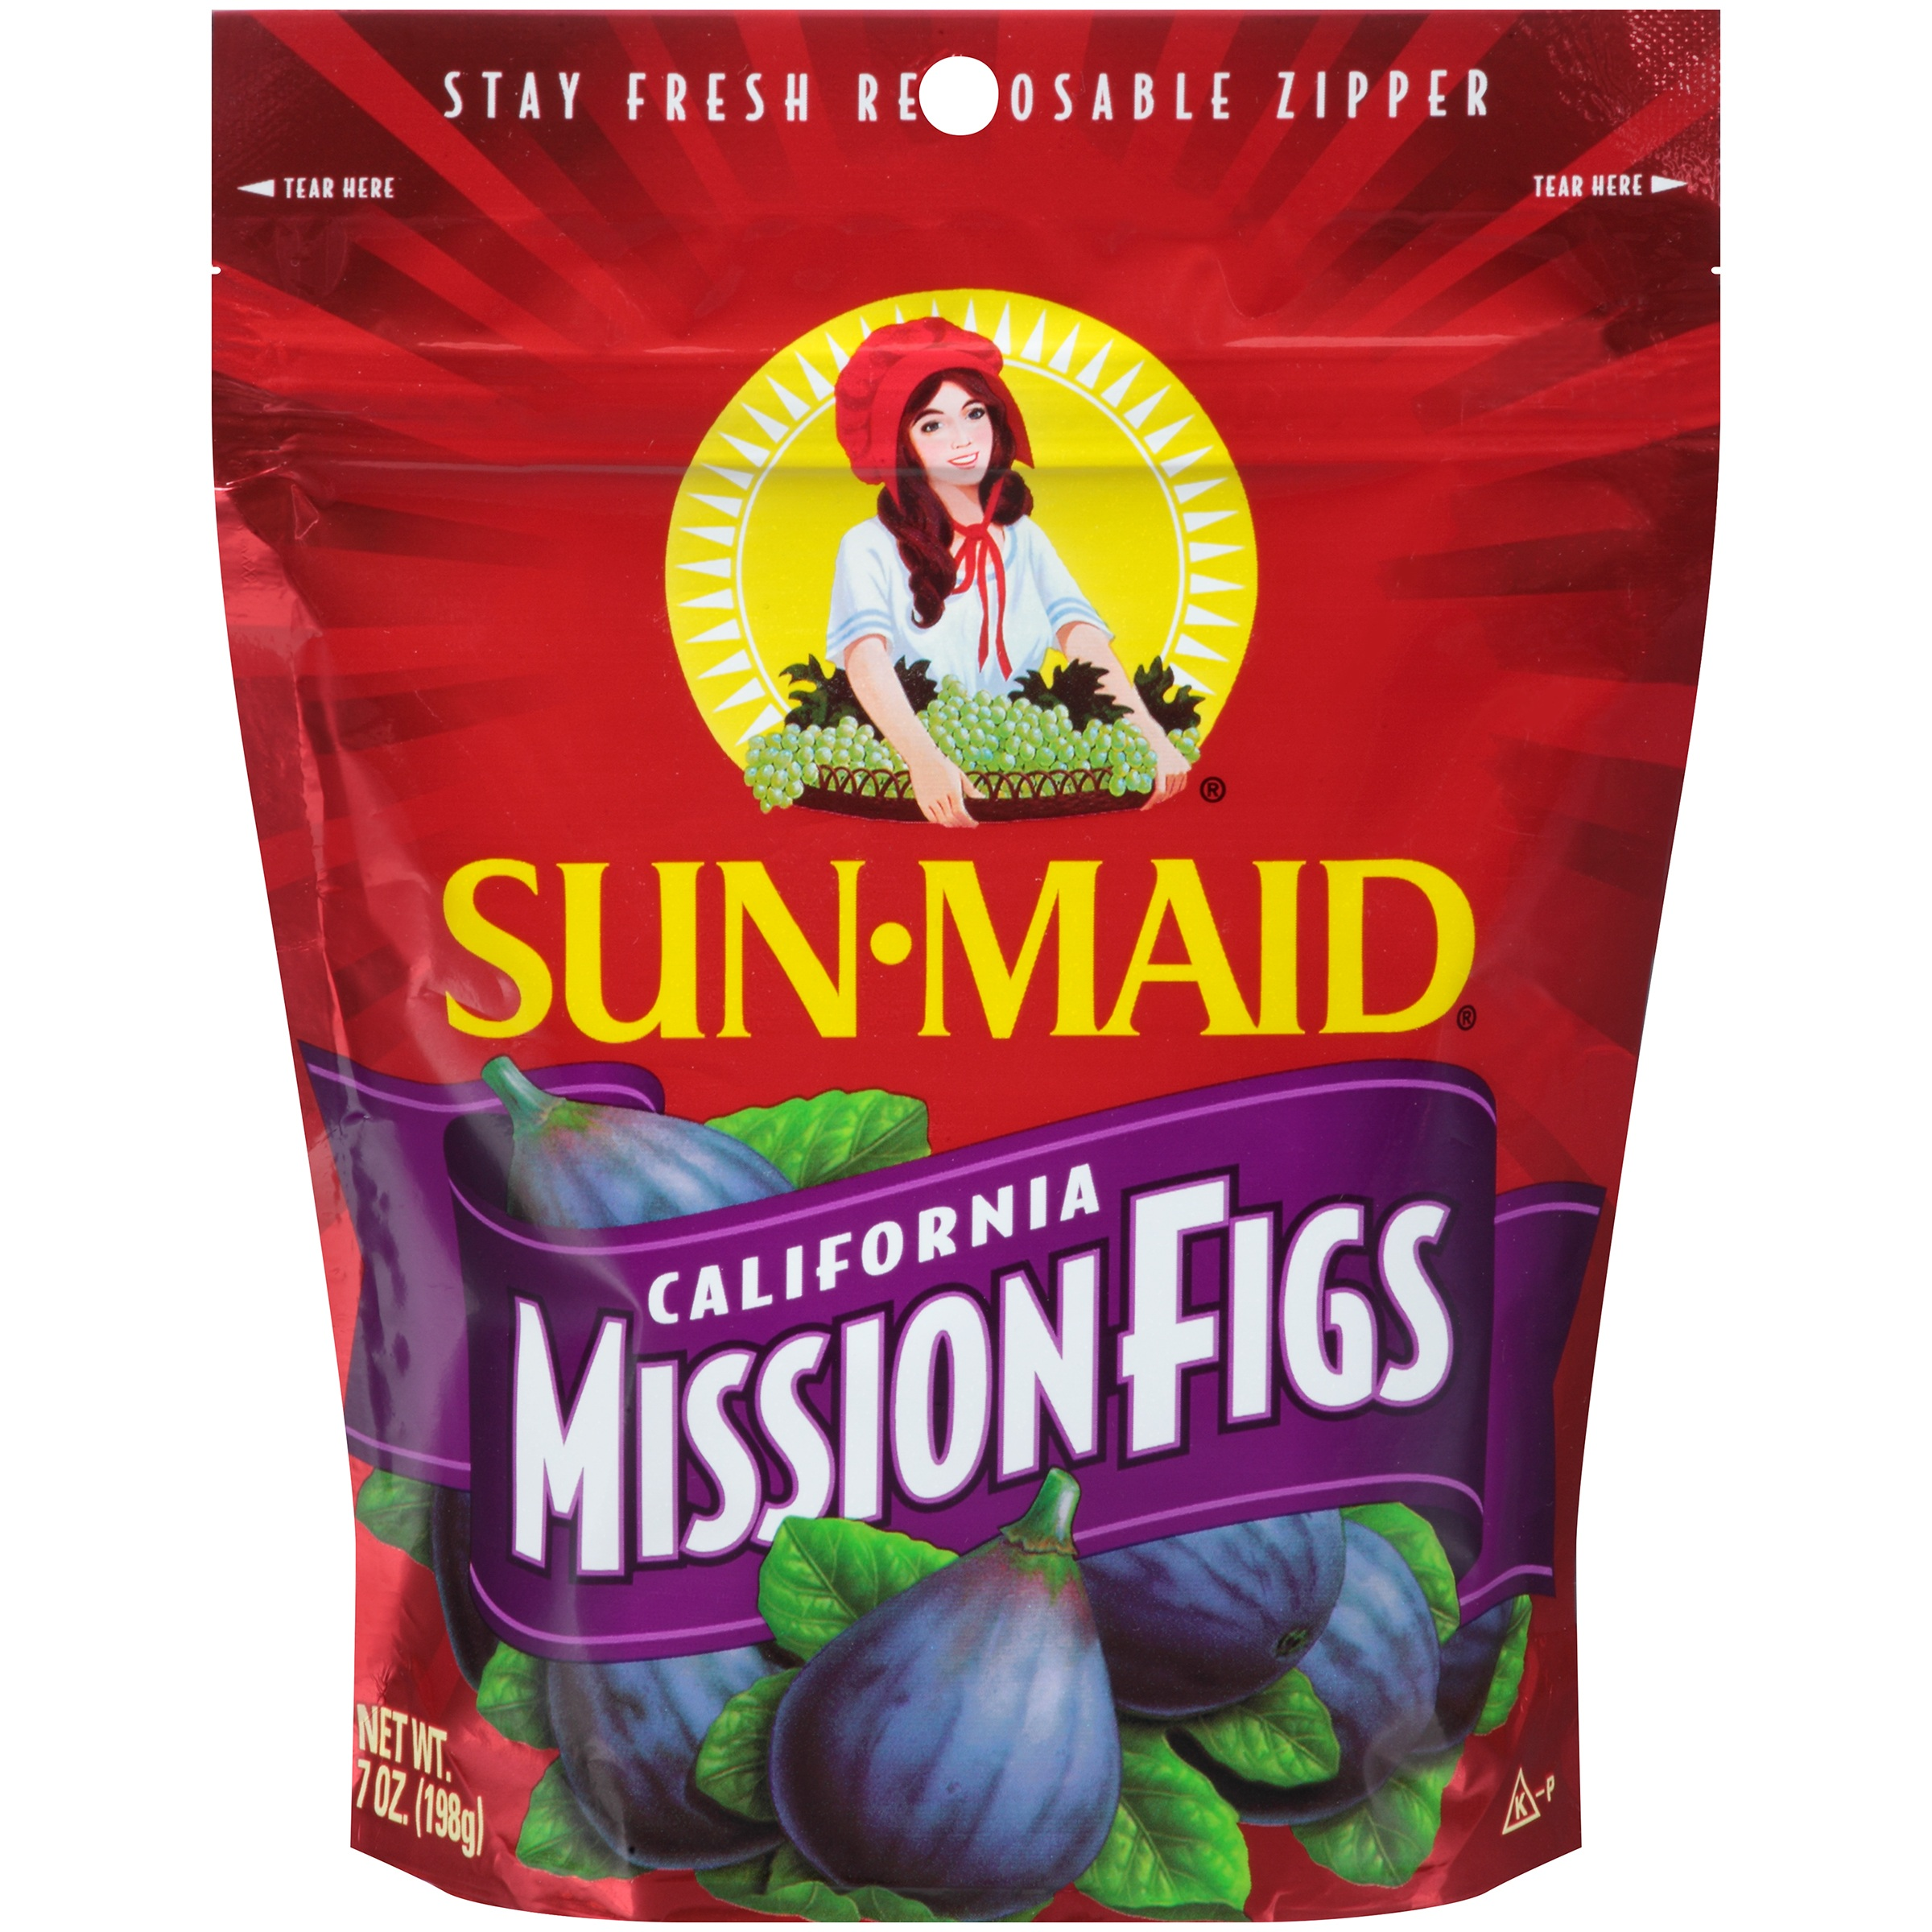 (3 Pack) Sun-Maid California Mission Figs, 7 oz